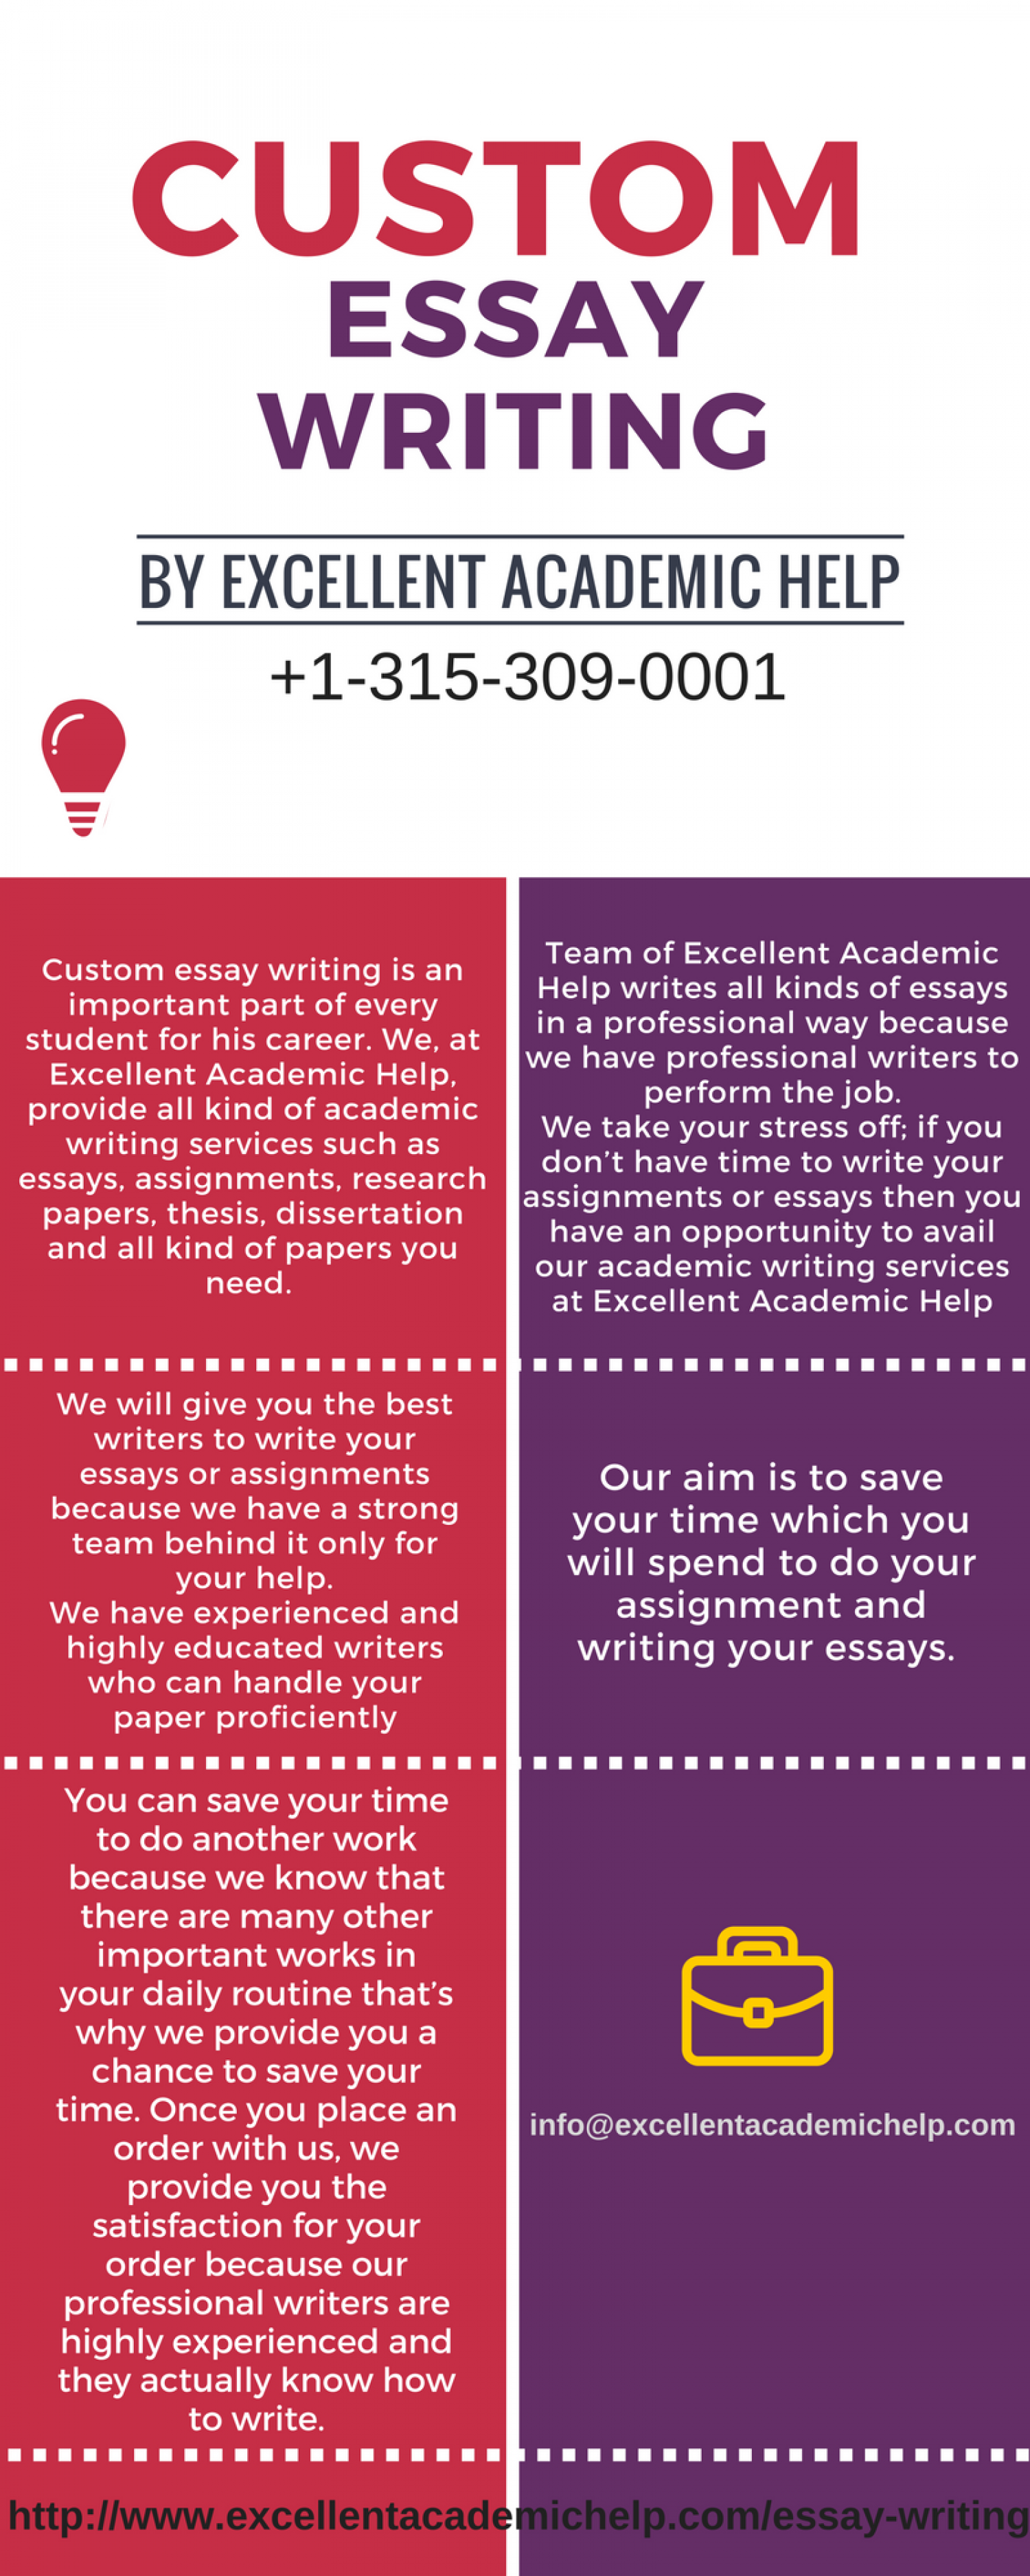 custom academic writing flowlosangeles com favourite meal essay quot s gaining self respect essay installed on the custom academic writing site include plagiarism check allows us to check your